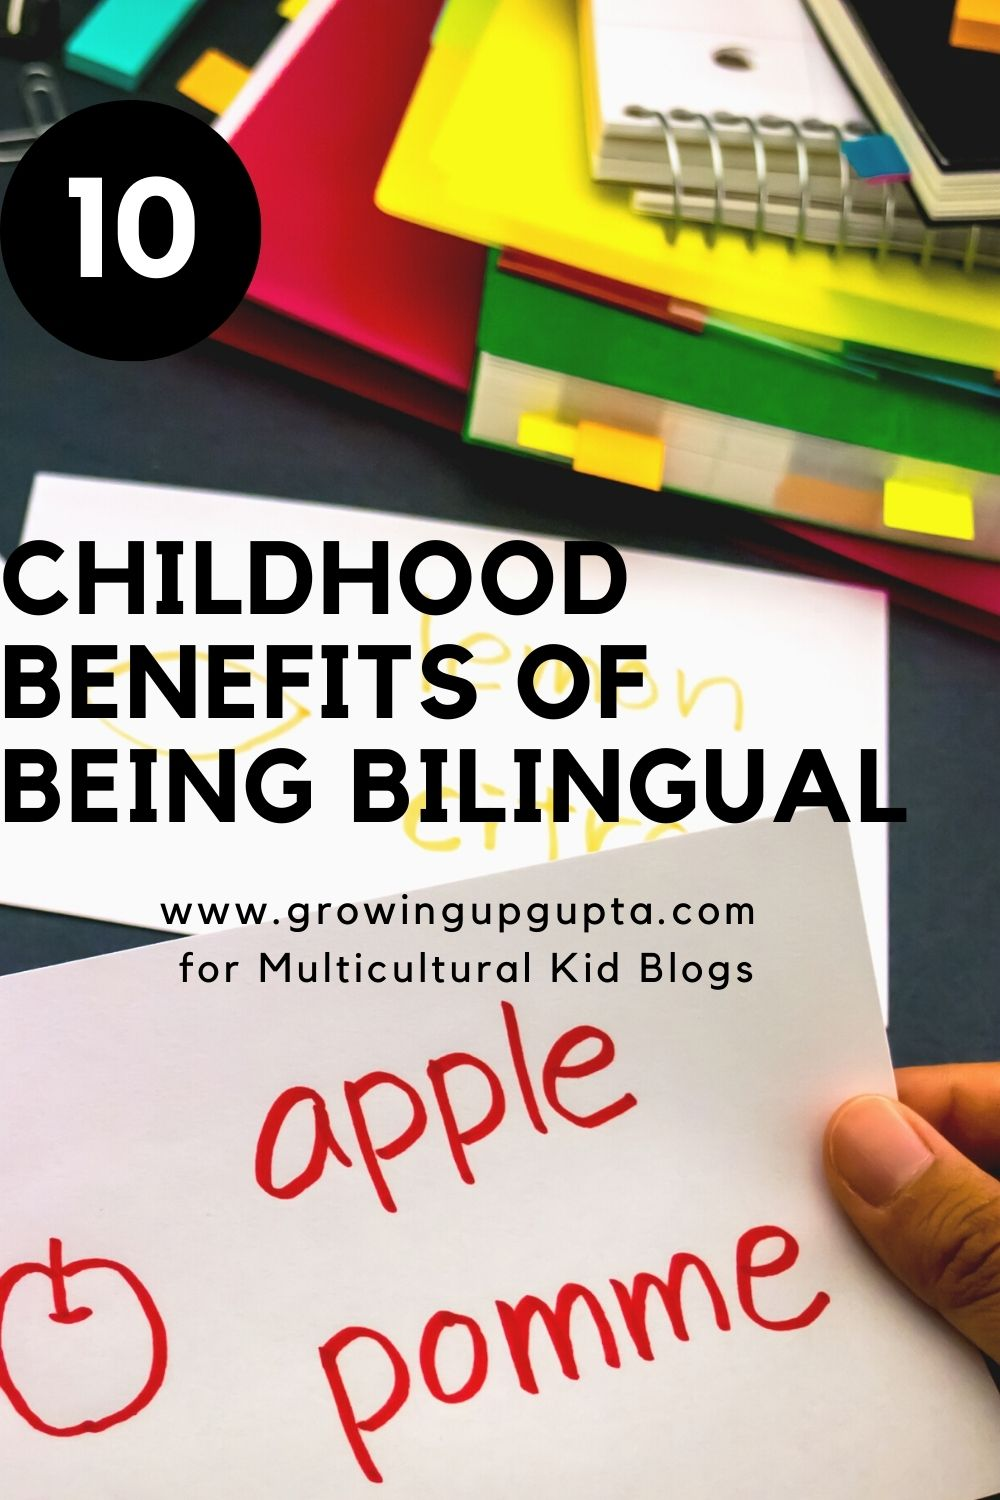 10 Childhood Benefits of Being Bilingual | Multicultural Kid Blogs